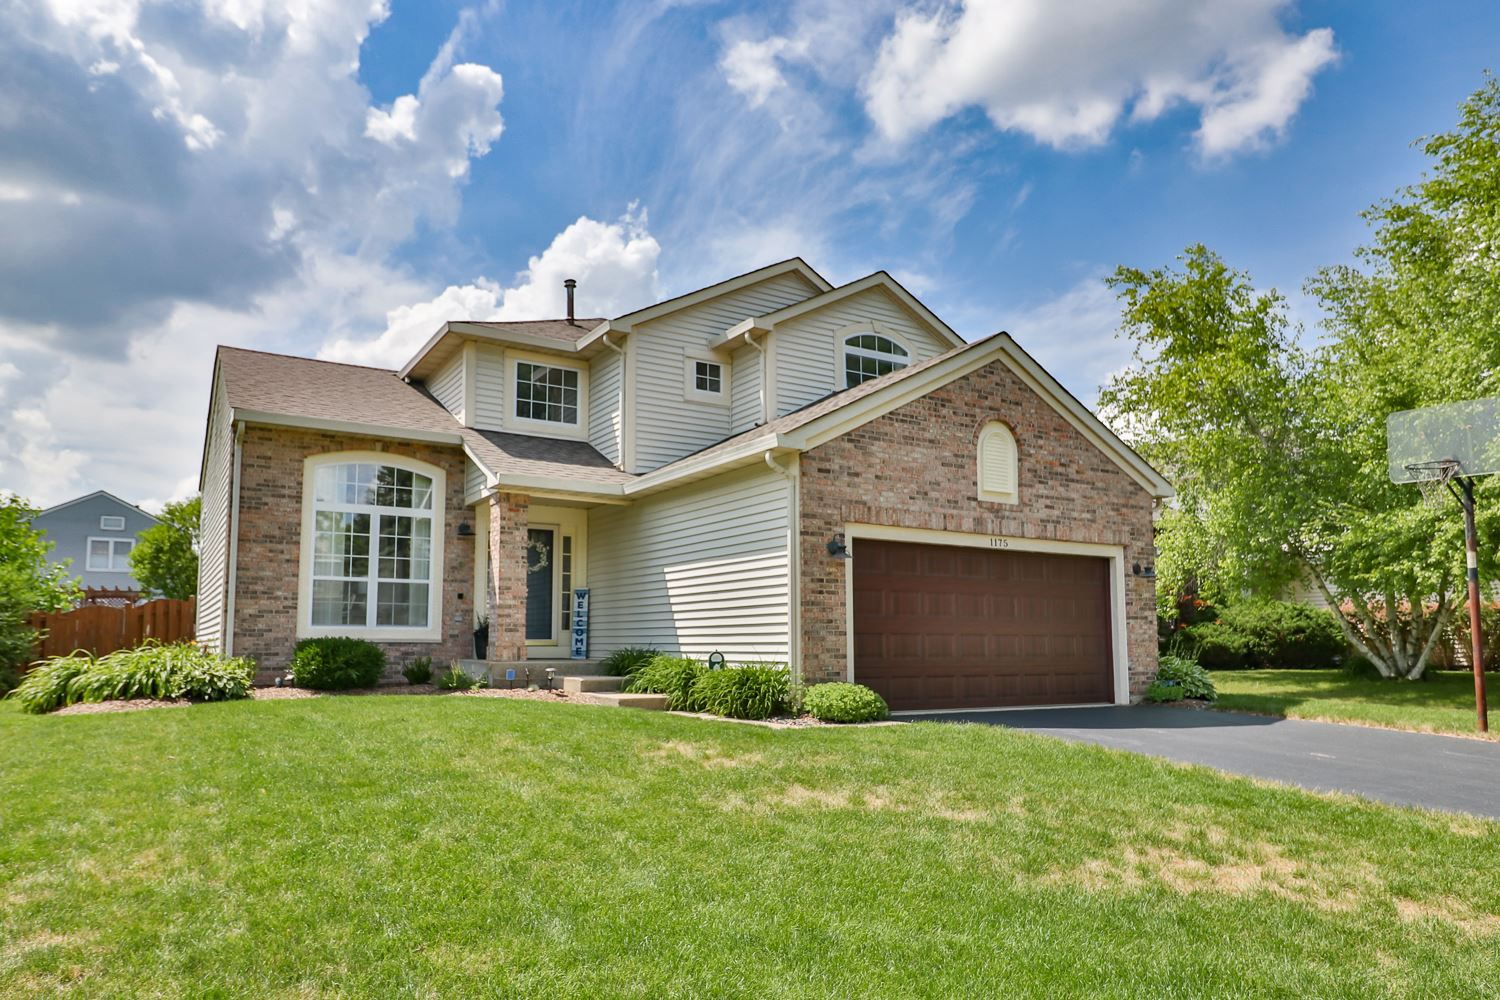 1175 Sweetwater Ridge, Lake in the Hills, IL 60156 - #: 10766373